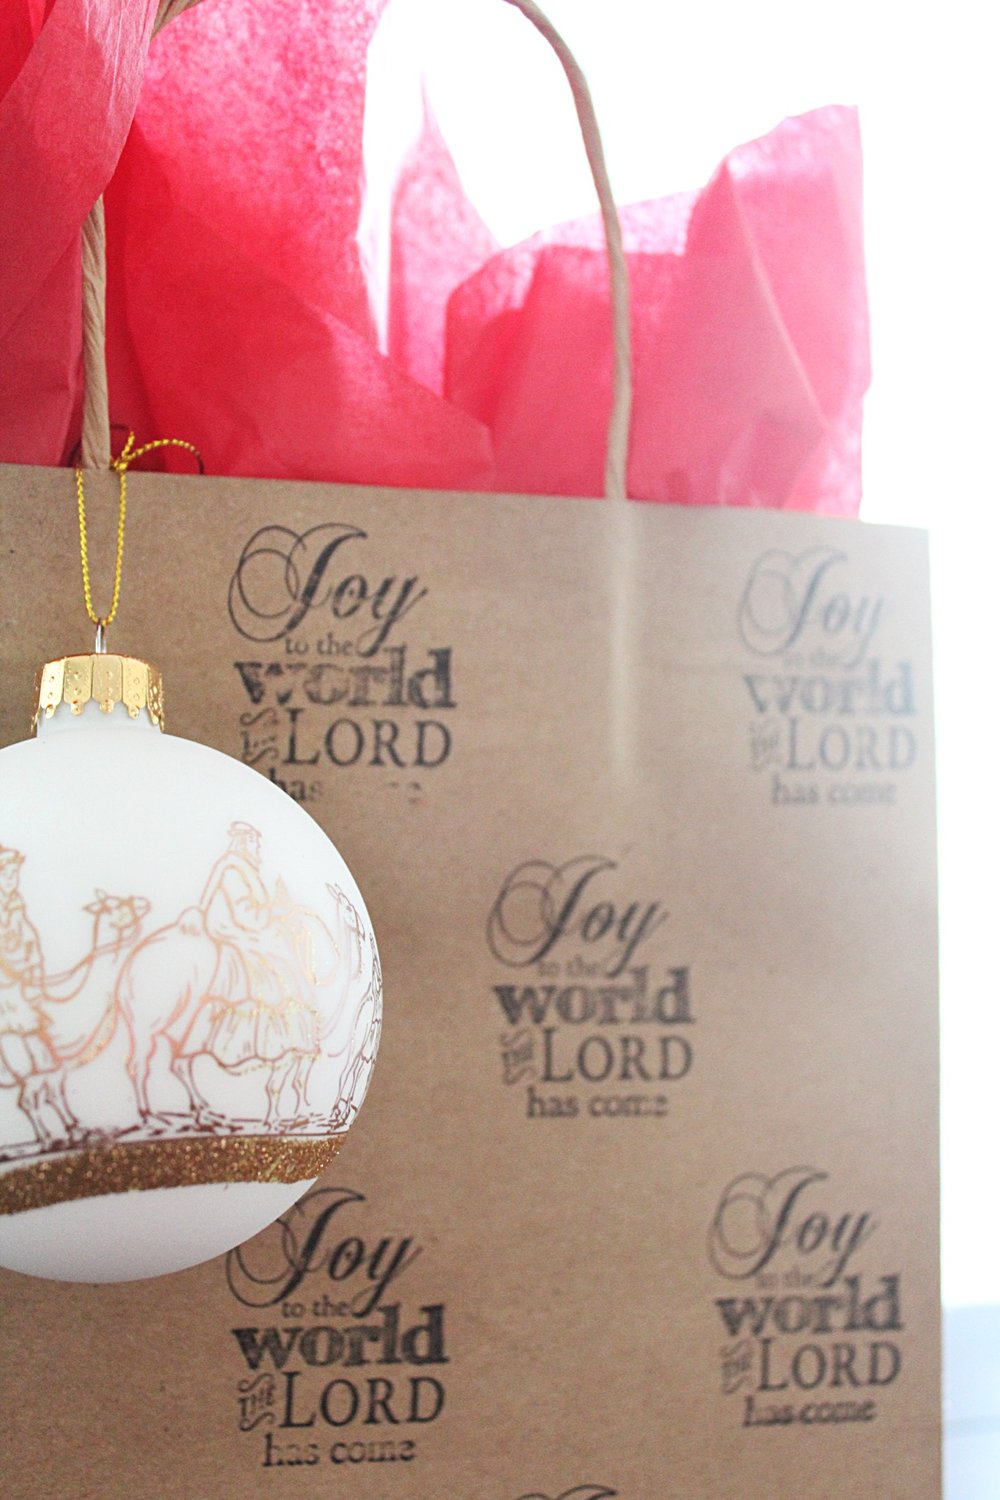 diy-christian-gift-wrap-ideas-for-christmas.jpg